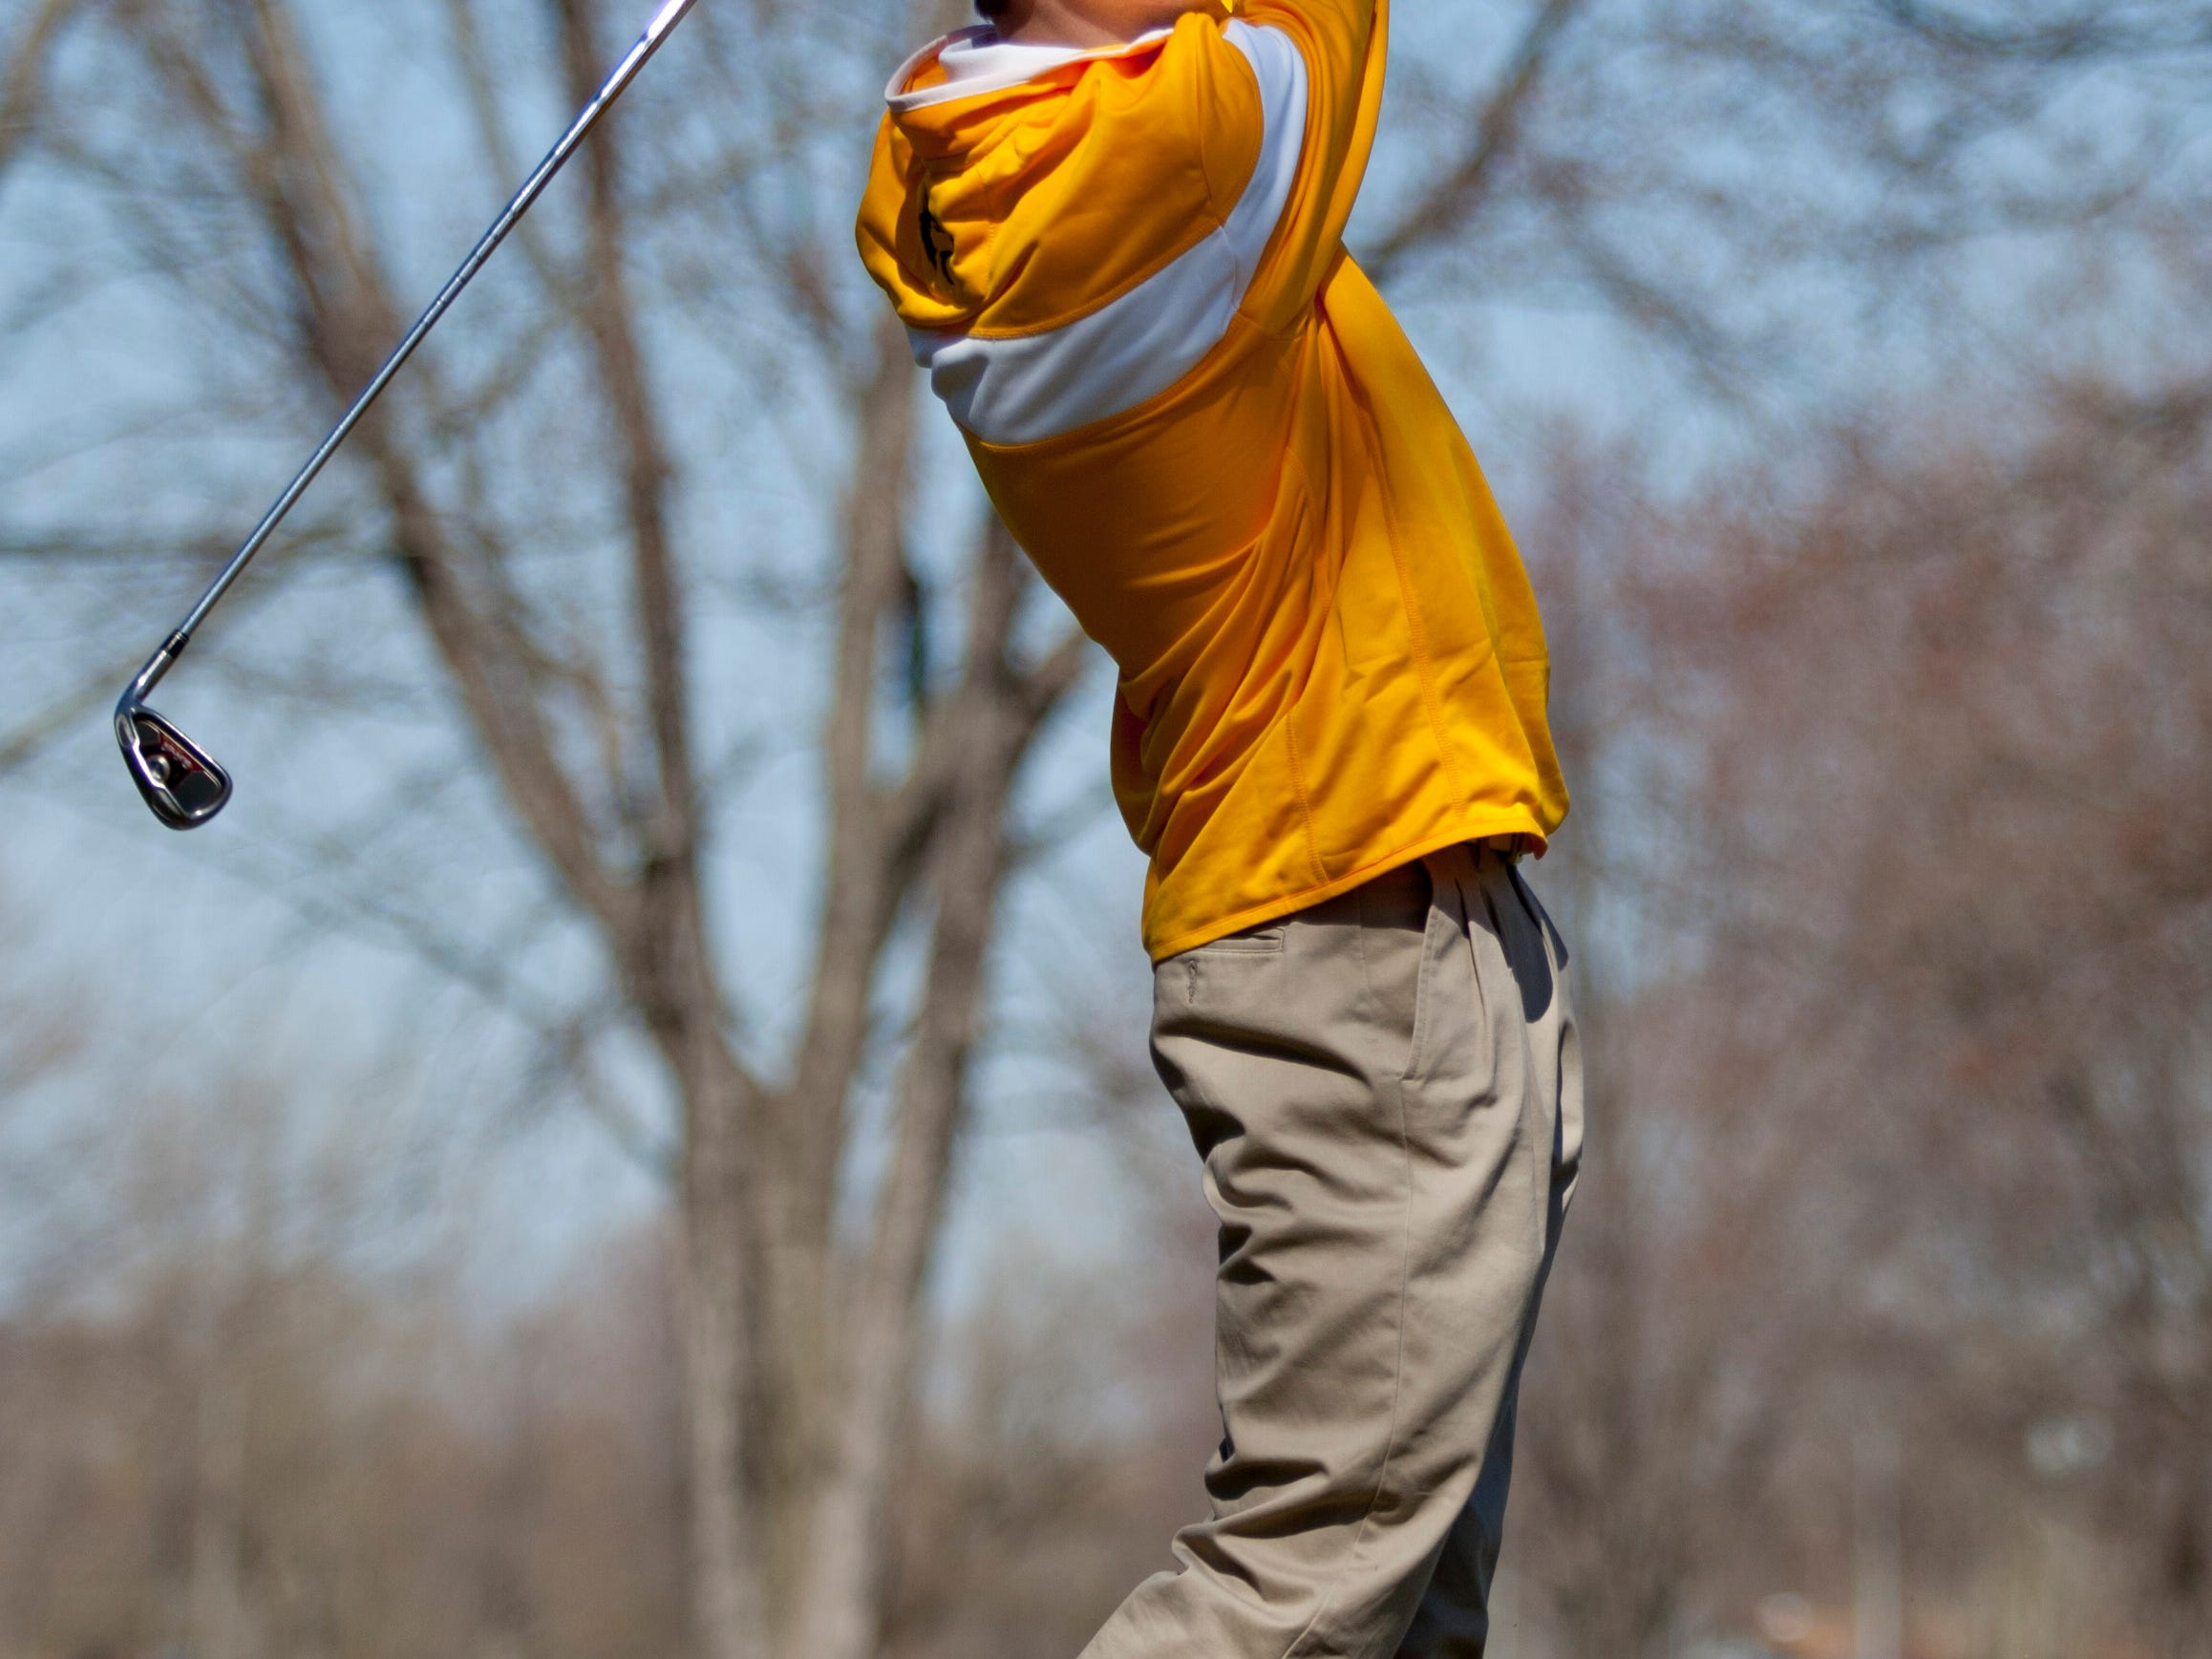 Port Huron Northern sophomore Kurtis Obermyer, 16, takes a shot from the fairway Friday, April 17, 2015 at the Port Huron Elks Golf Club in Port Huron Township.